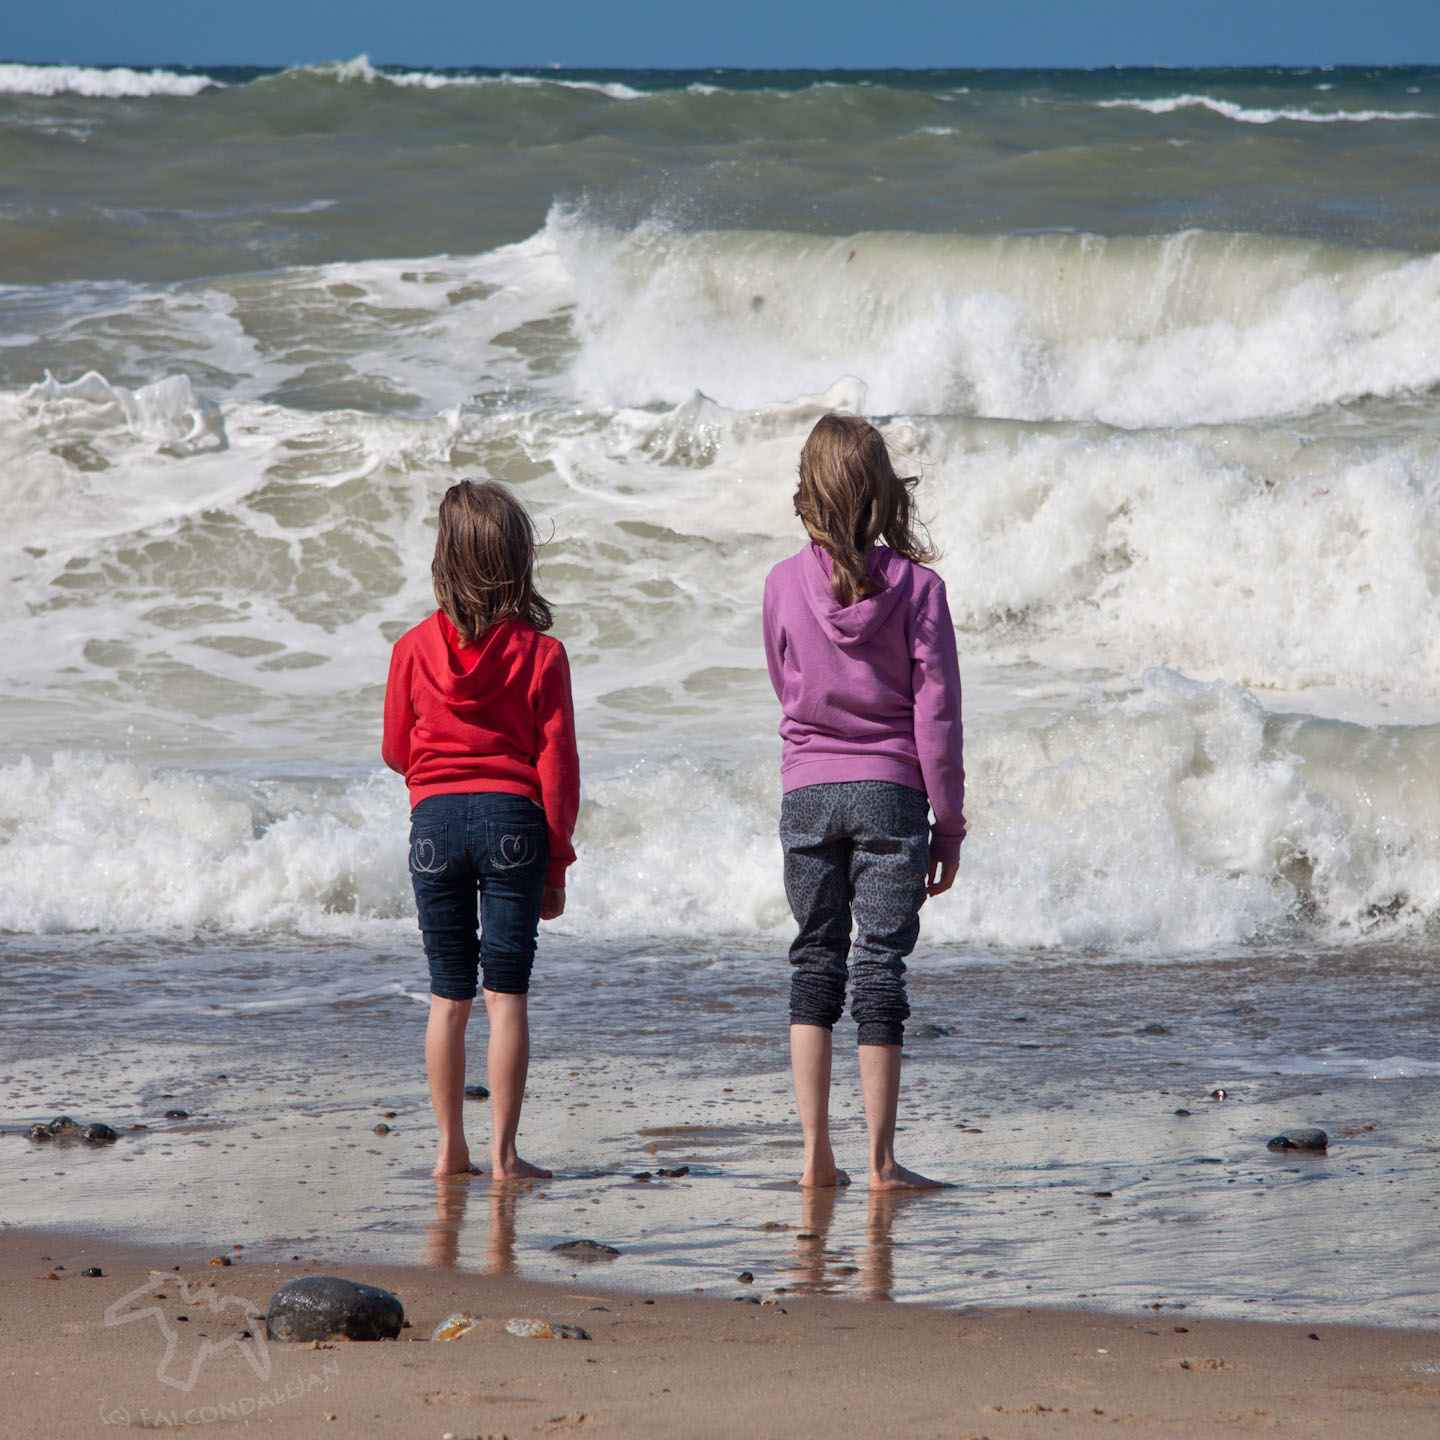 Ideas and tips for a vacation that's suitable for sensitive people. Where could we take an anxious teenager or child on holiday? Plan calmer family travel. Image description: 2 girls in hoodies and rolled-up trousers stare out at waves on the sea.